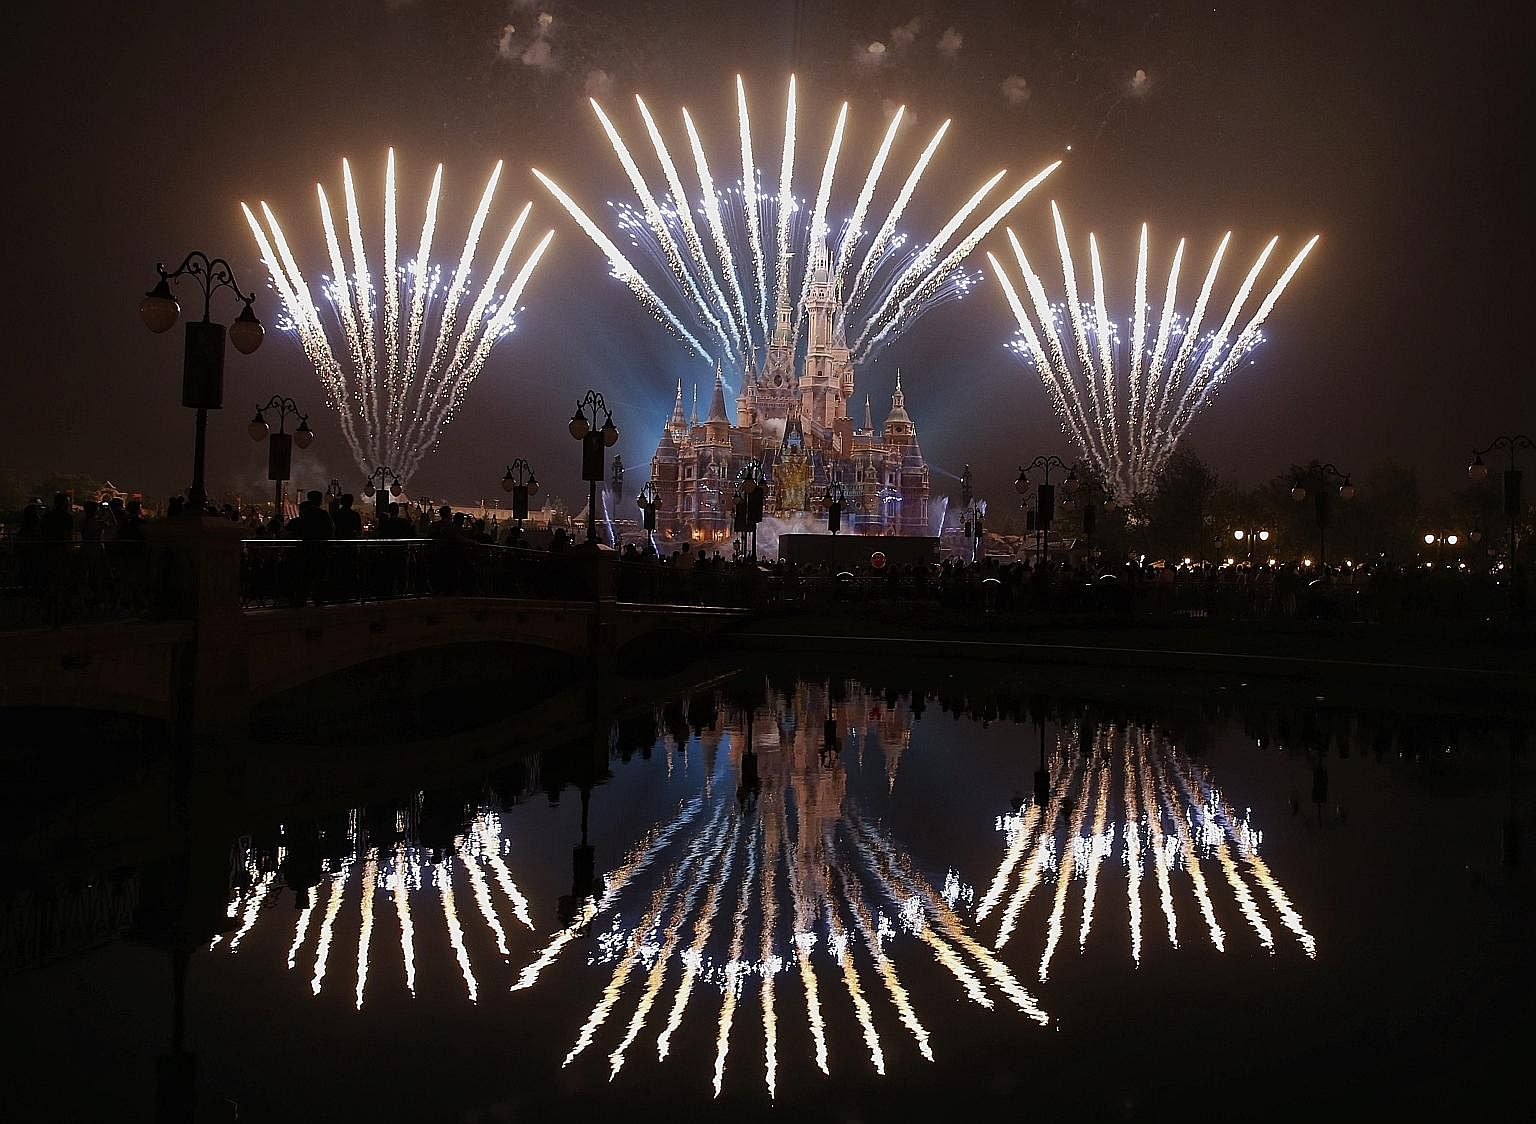 Fireworks lighting up the Enchanted Storybook Castle at the Shanghai Disney Resort which will officially open on June 16.